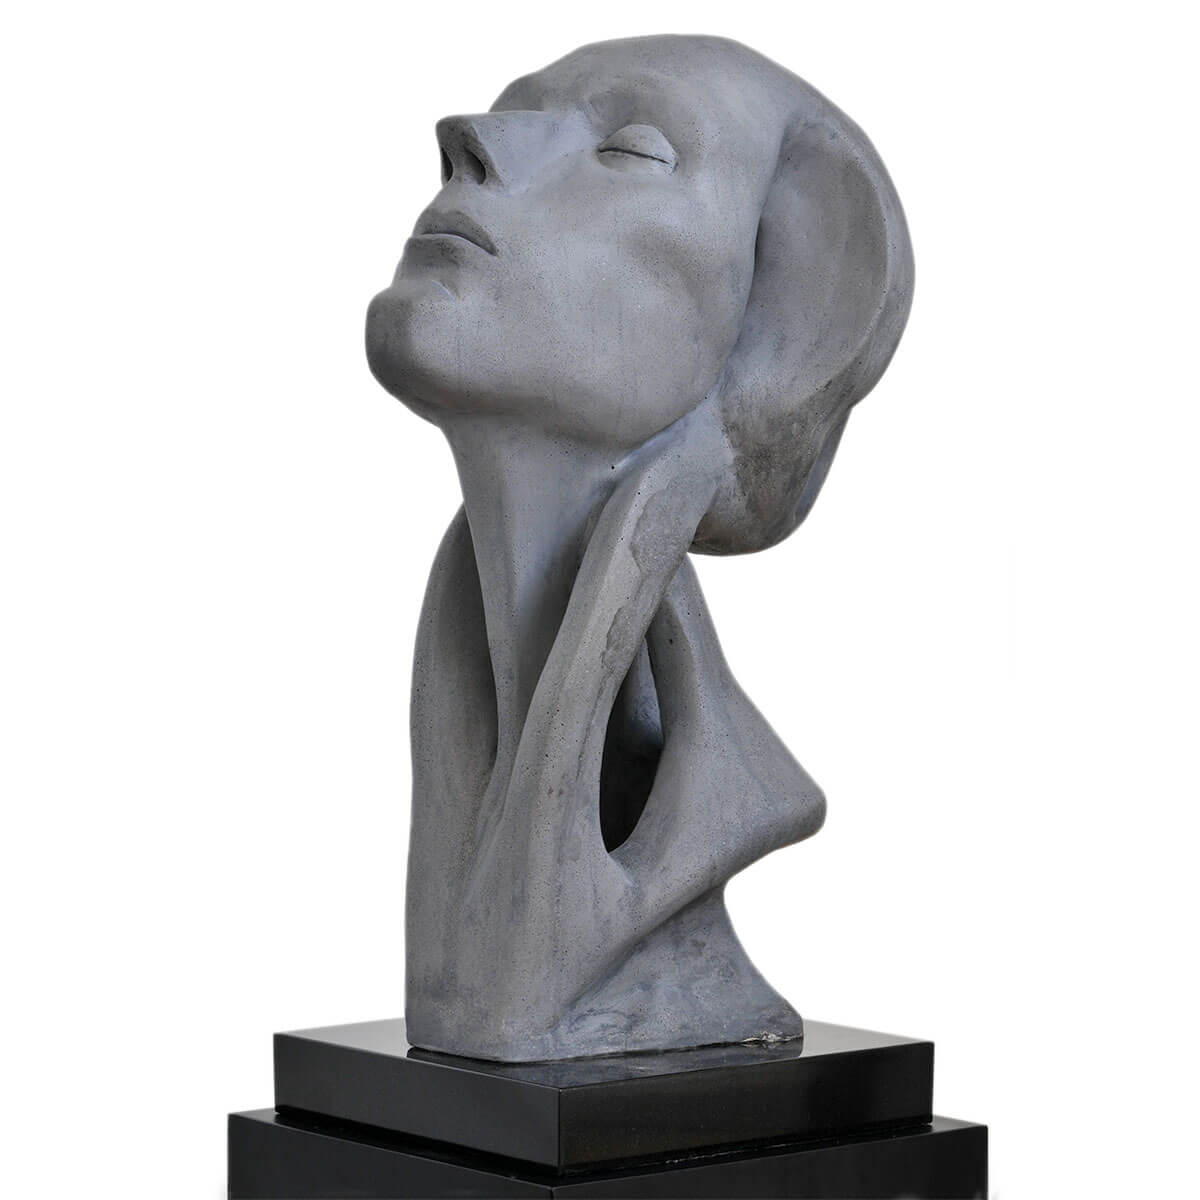 Robert-Helle-Sculpture-Gallery-Contemplation-Header-1200x1200